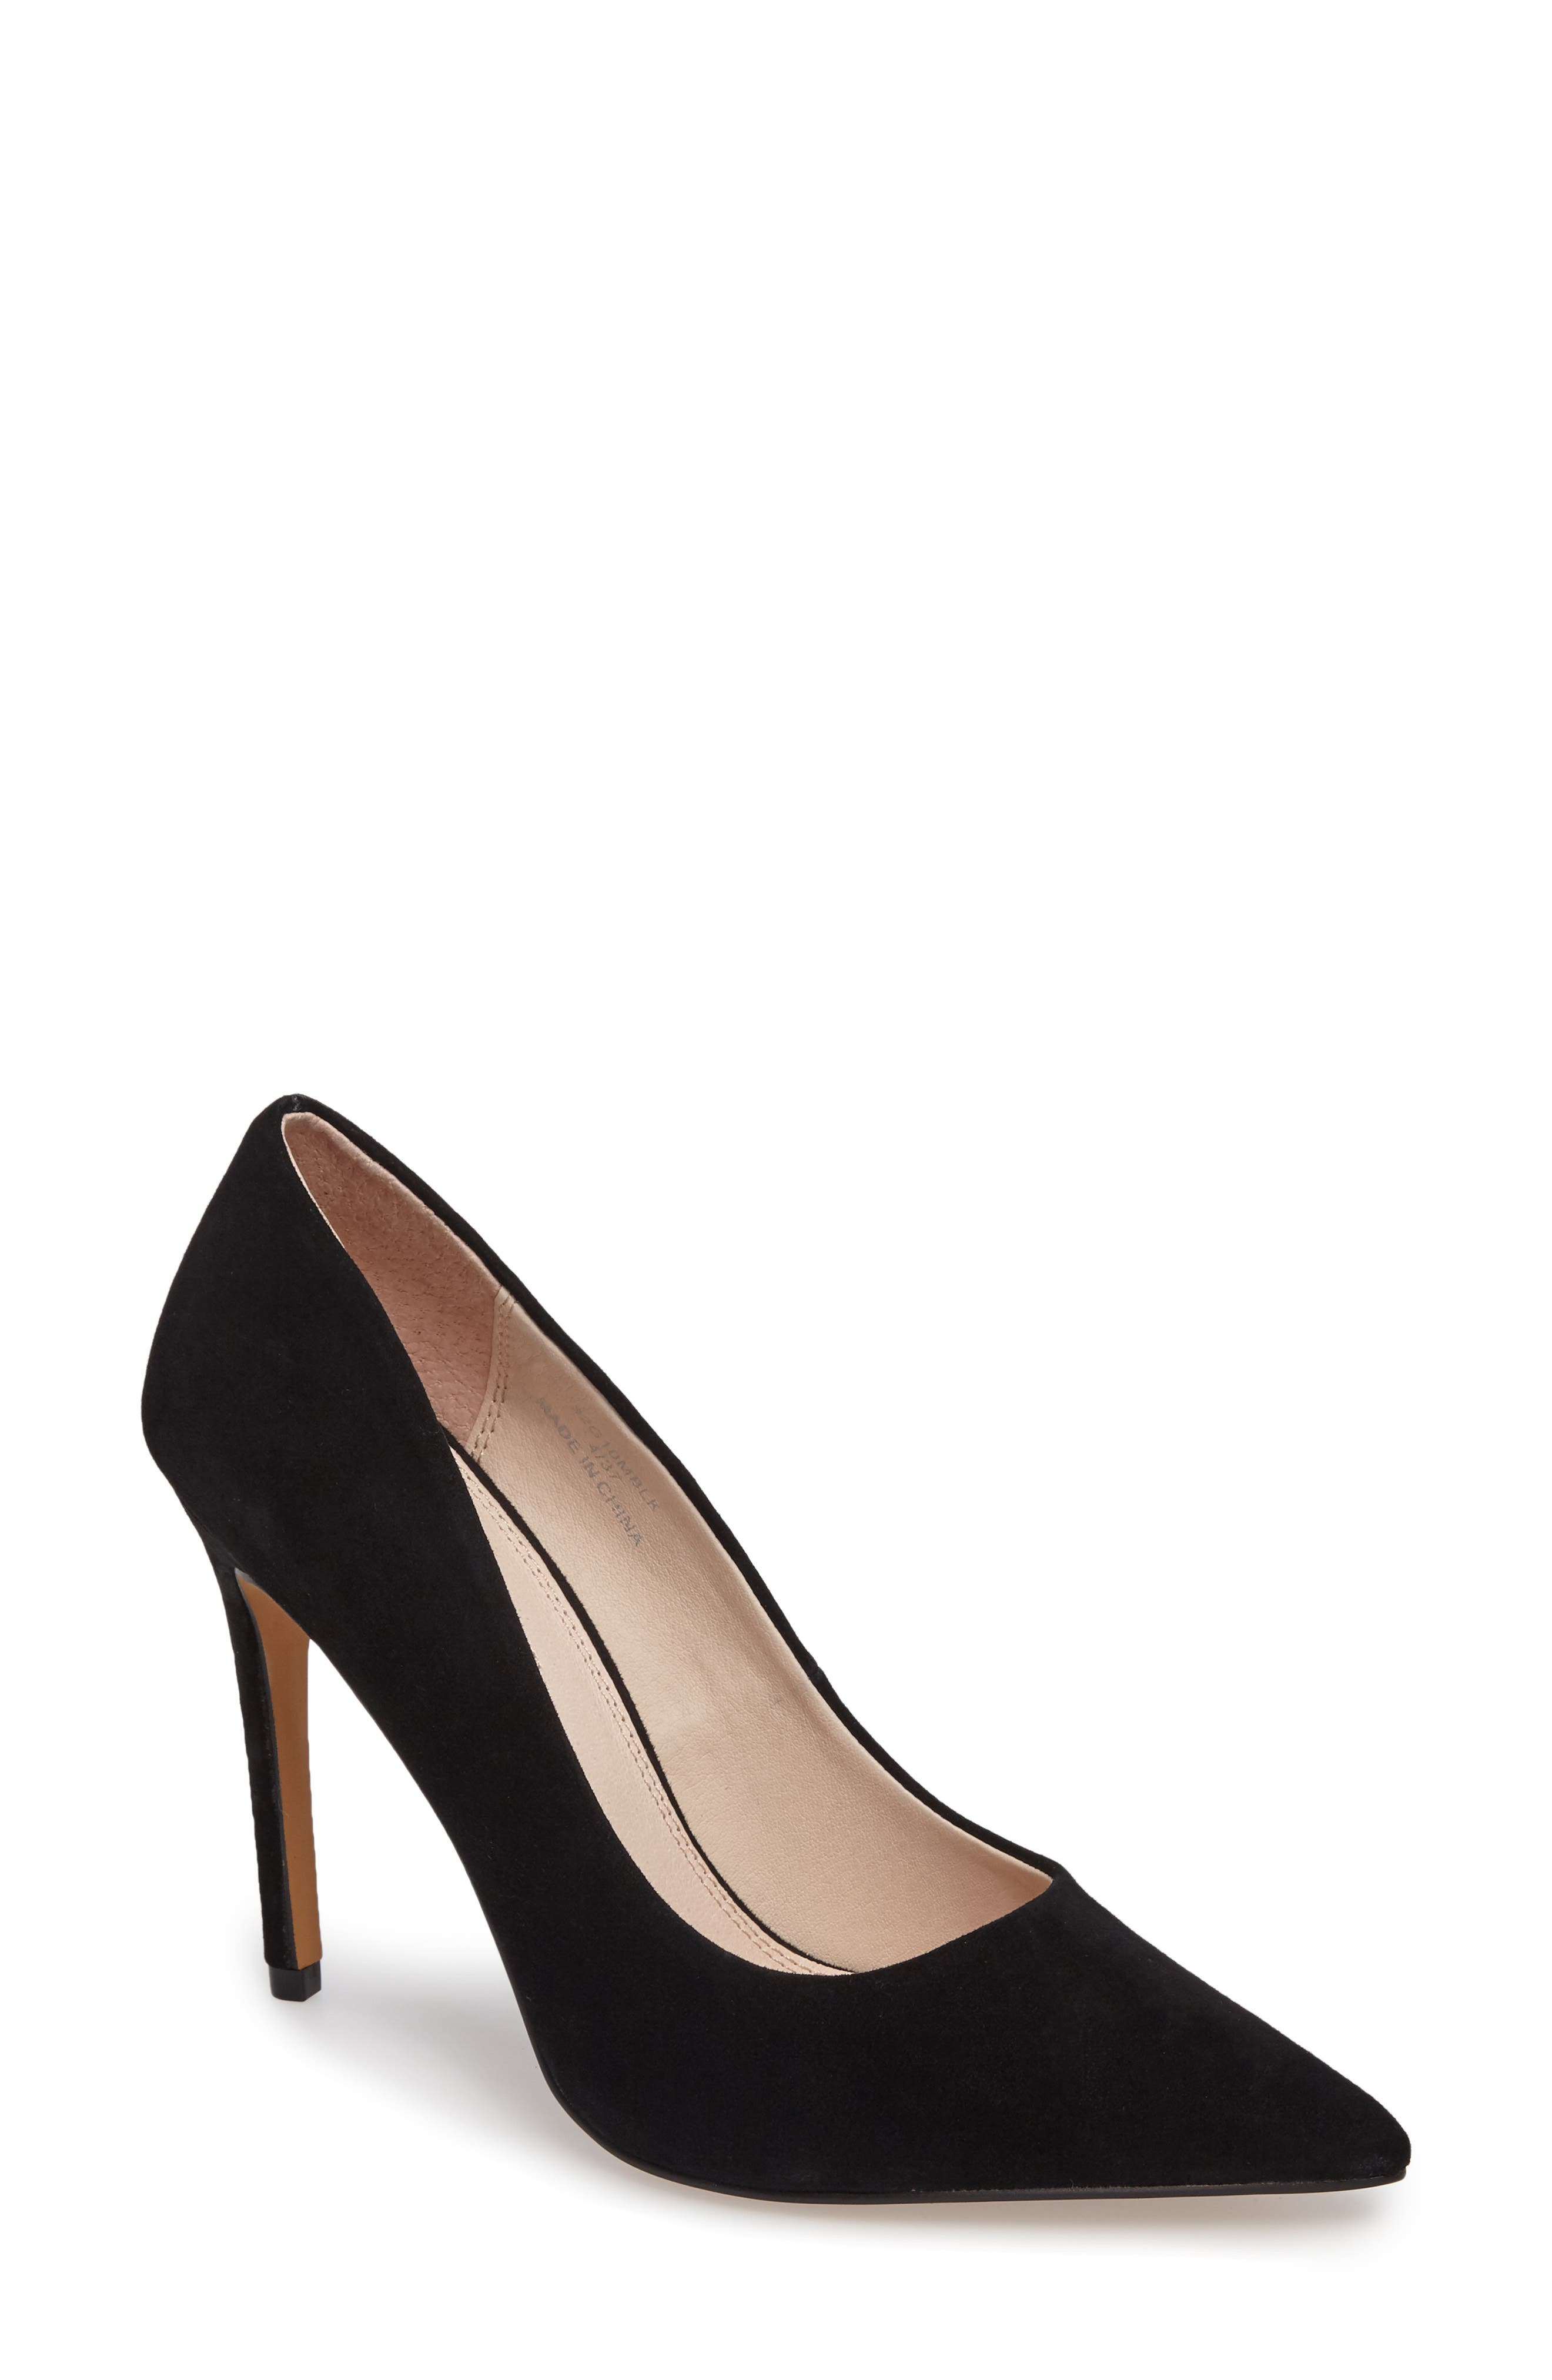 TOPSHOP Grammer Pointy Toe Pump, Main, color, 001